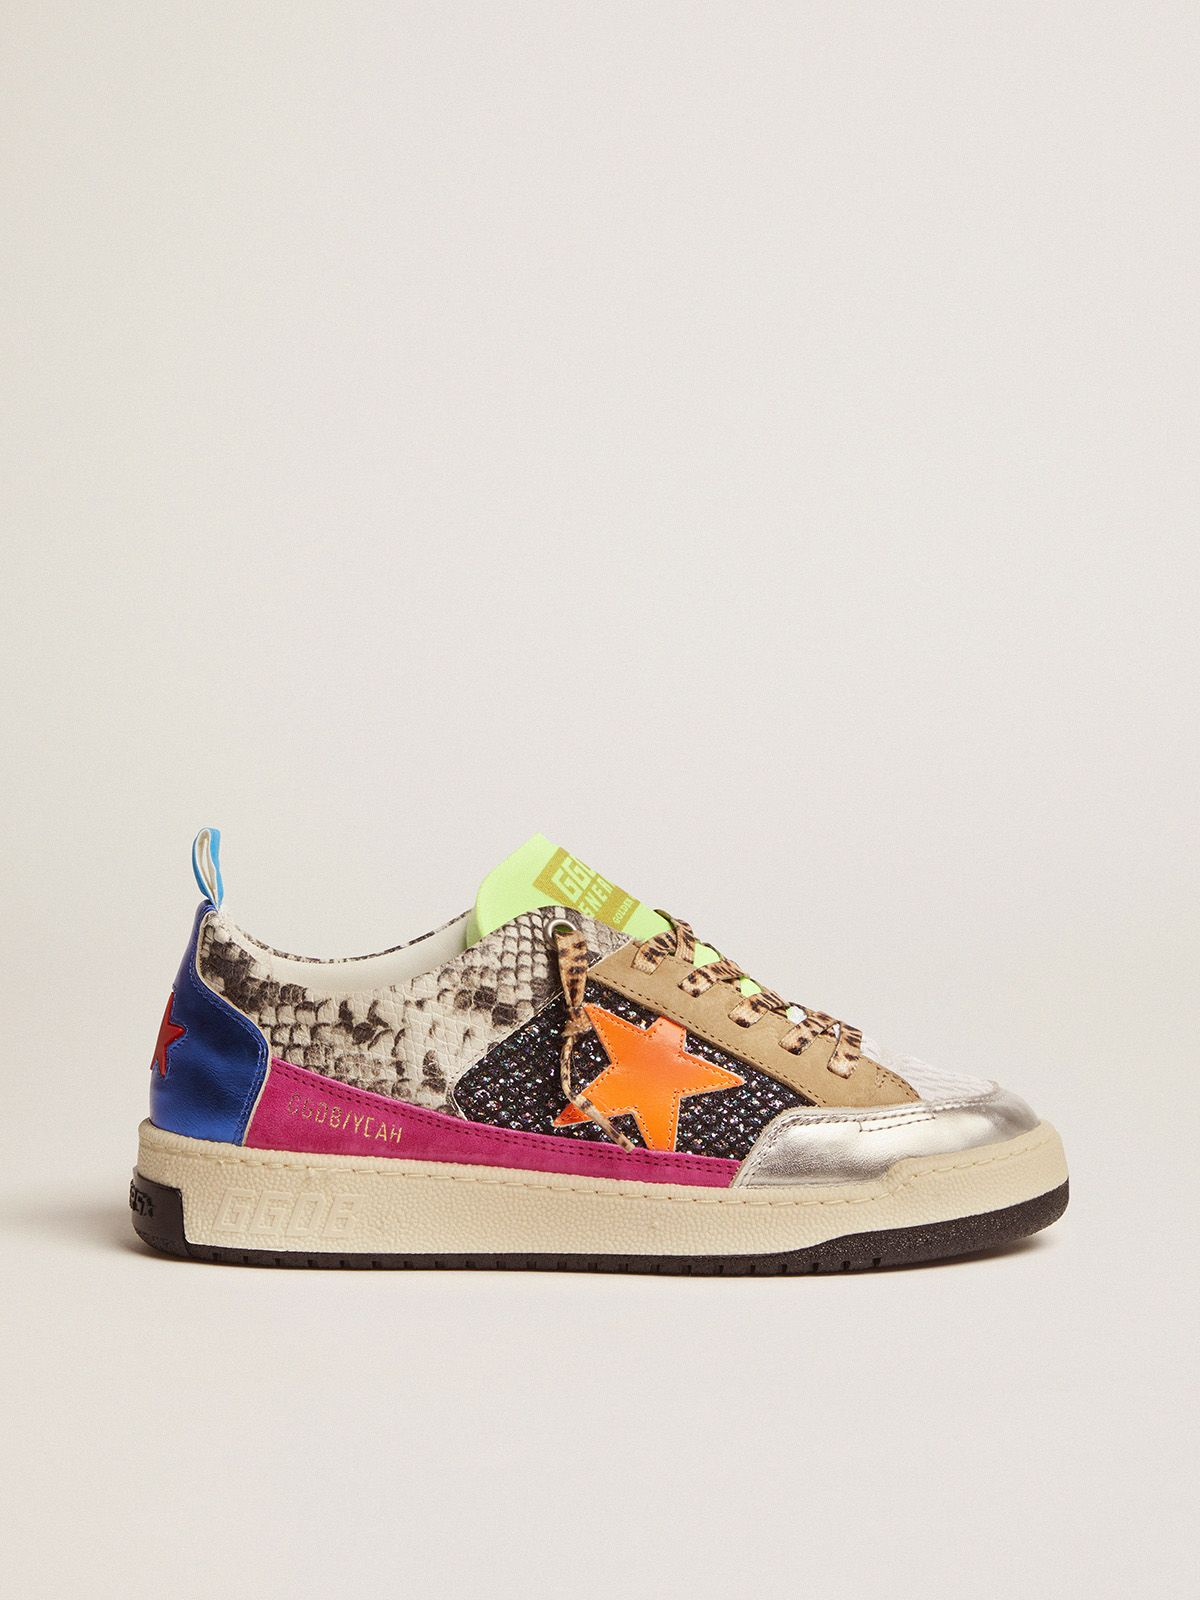 Women's snakeskin-print Yeah sneakers with orange star